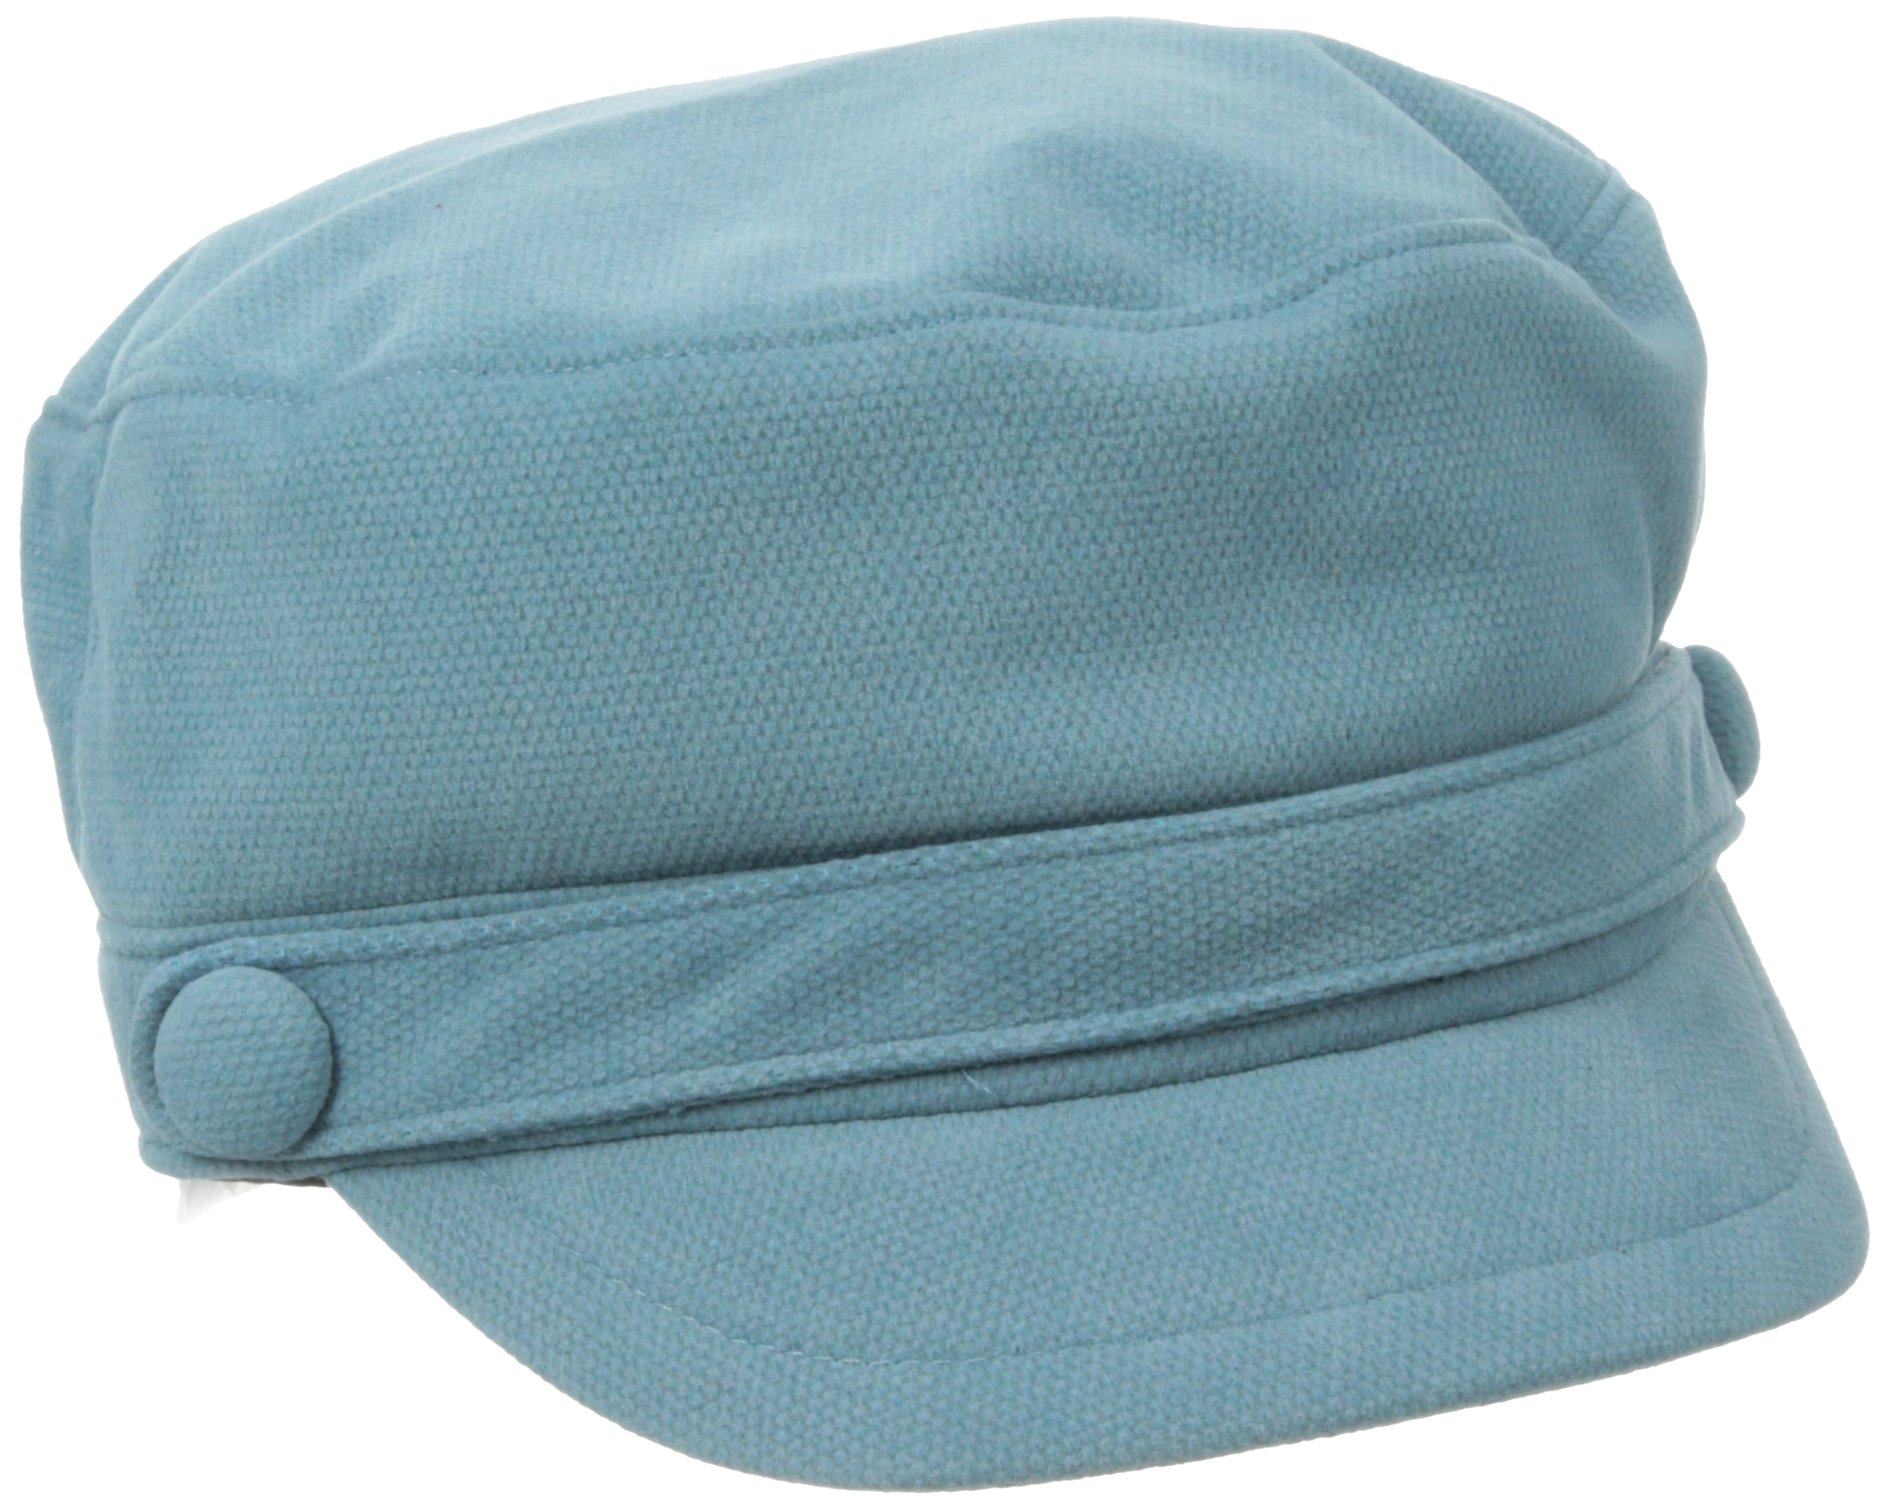 San Diego Hat Company Women's Sueded Corduroy Greek Fisherman Hat, Teal, One Size